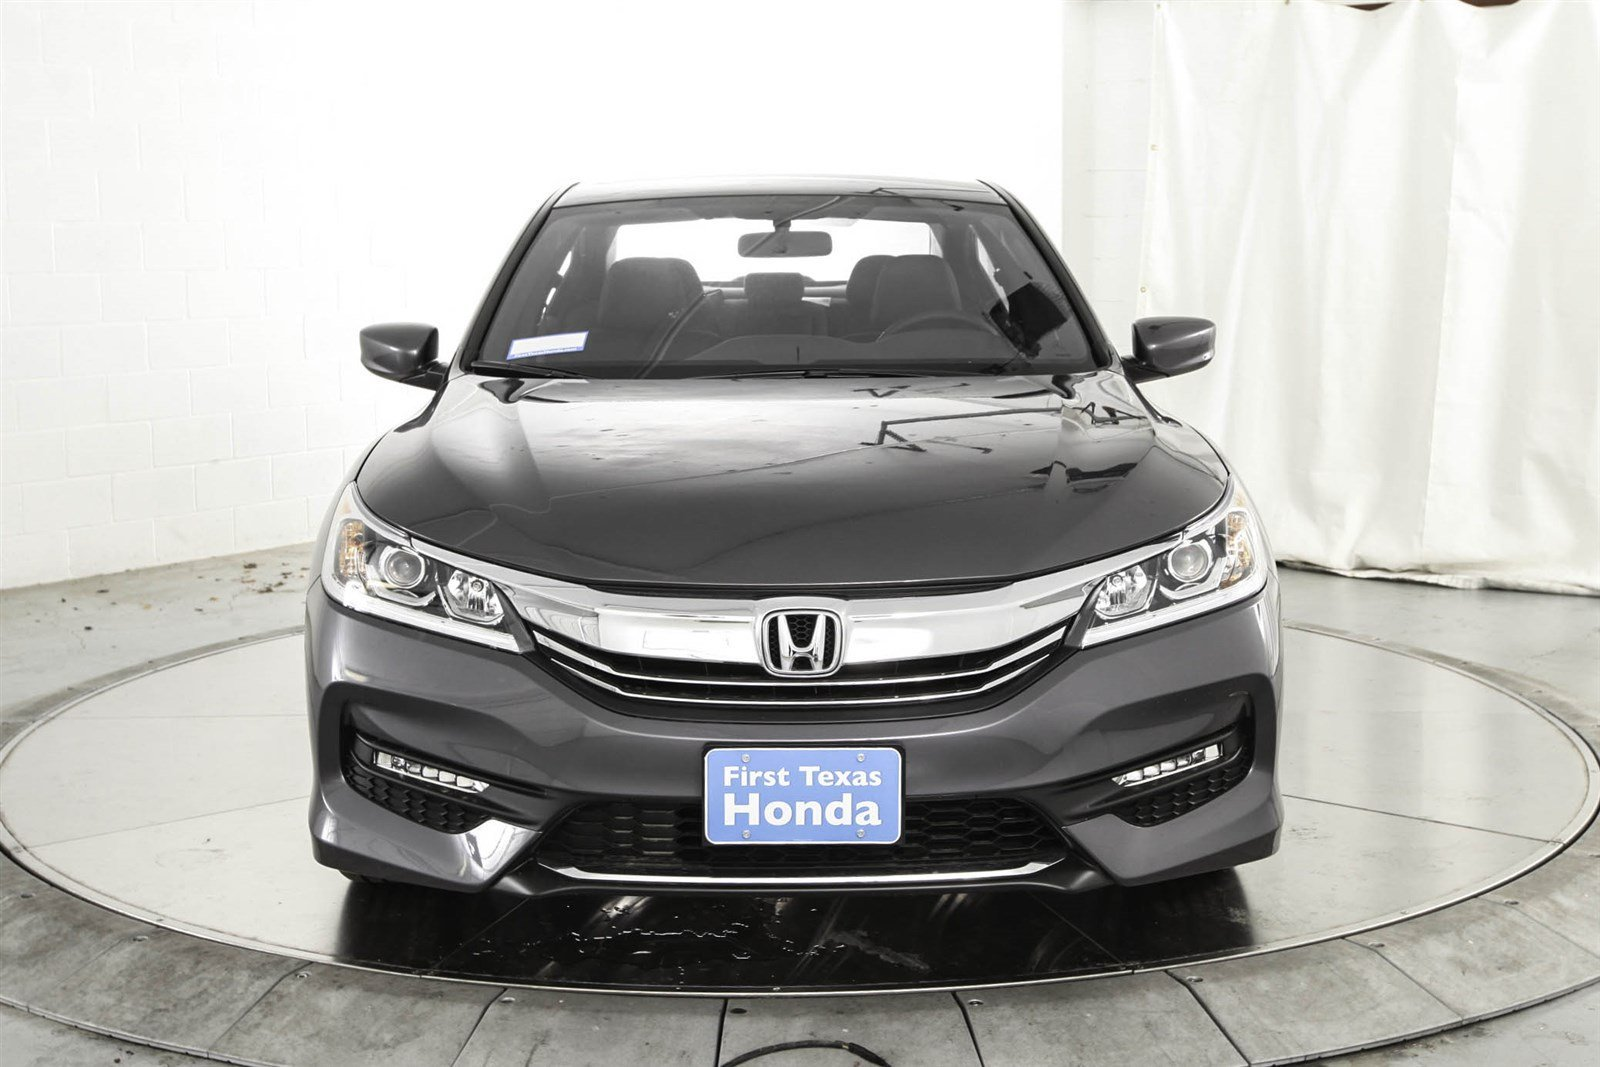 Honda Of Fort Worth Coupons >> First Texas Honda Coupons | 2017/2018/2019 Honda Reviews